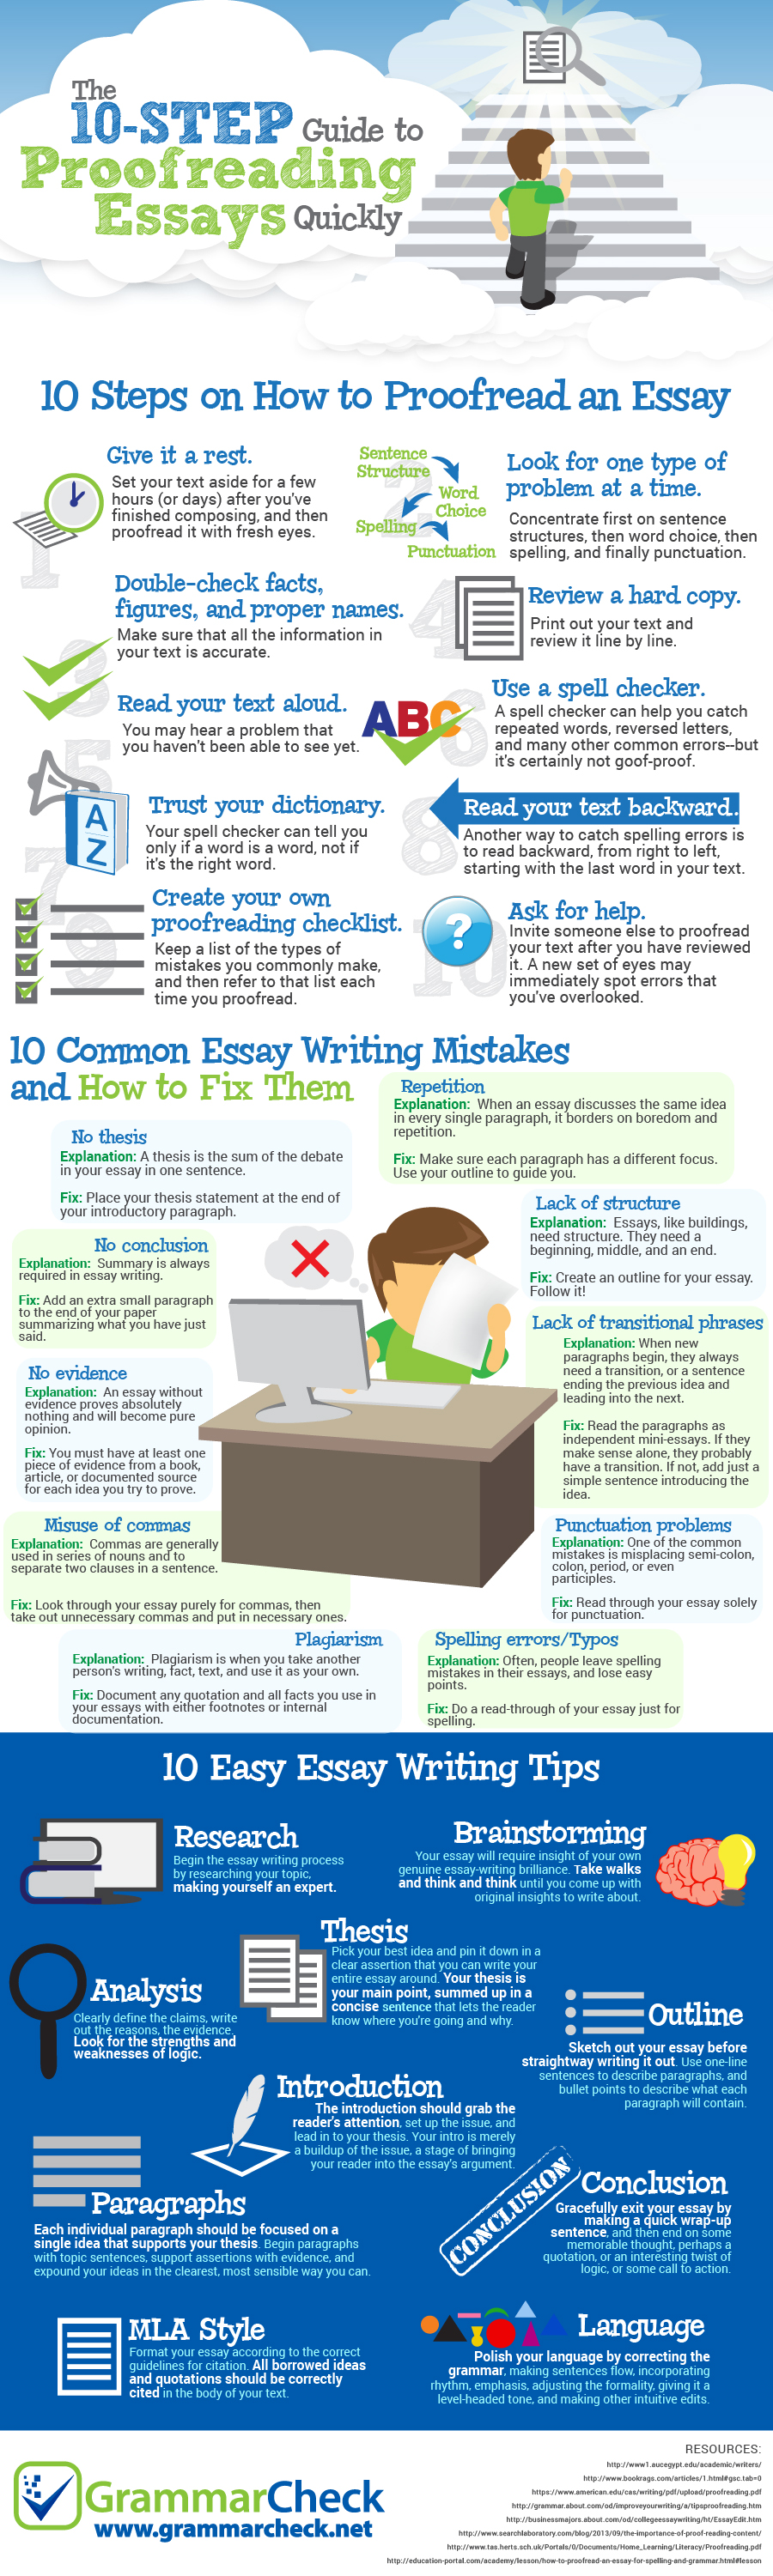 the 10 step guide to proofreading essays quickly infographic